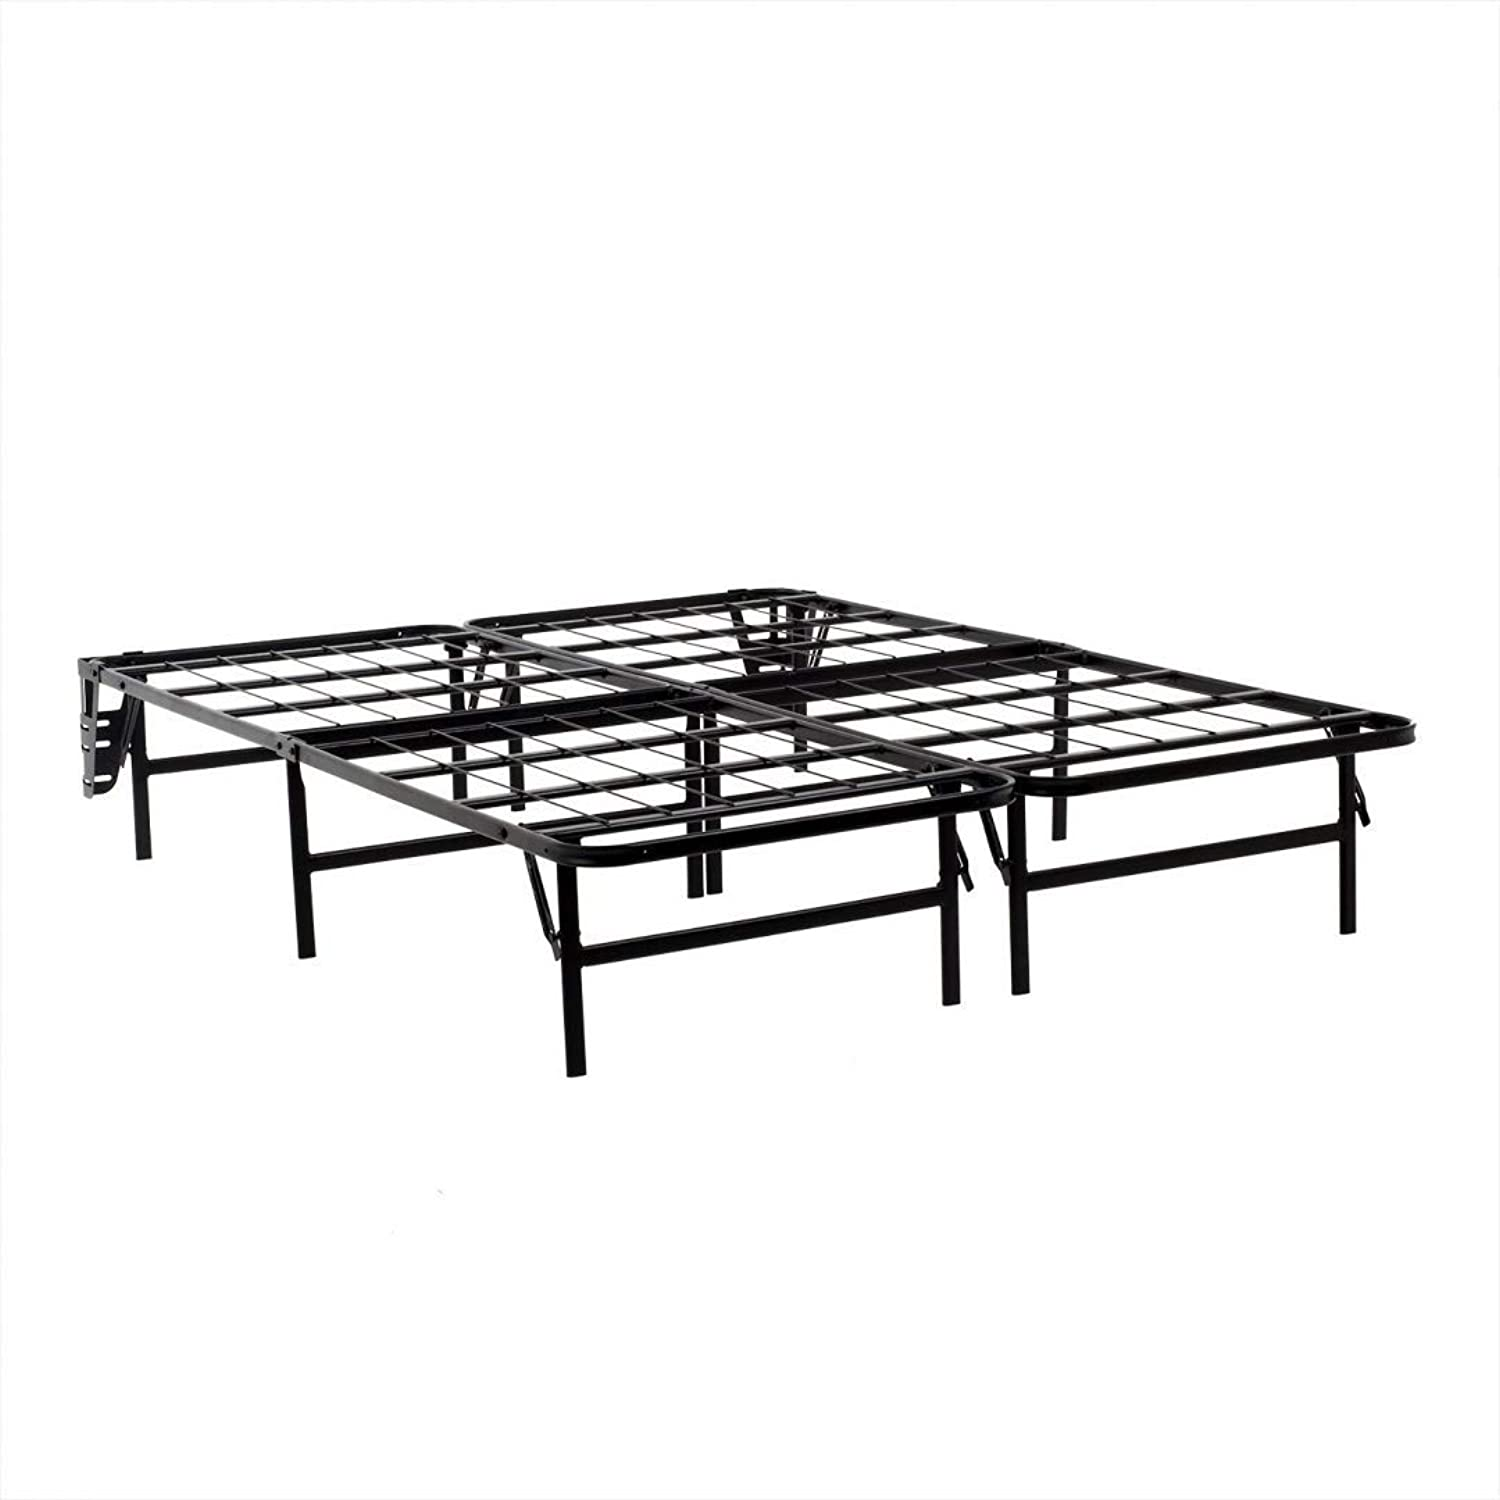 MALOUF Structures Highrise LT Foldable Bed Base, Platform Bed Frame and Box Spring in One, No Assembly Required, Twin X-Large